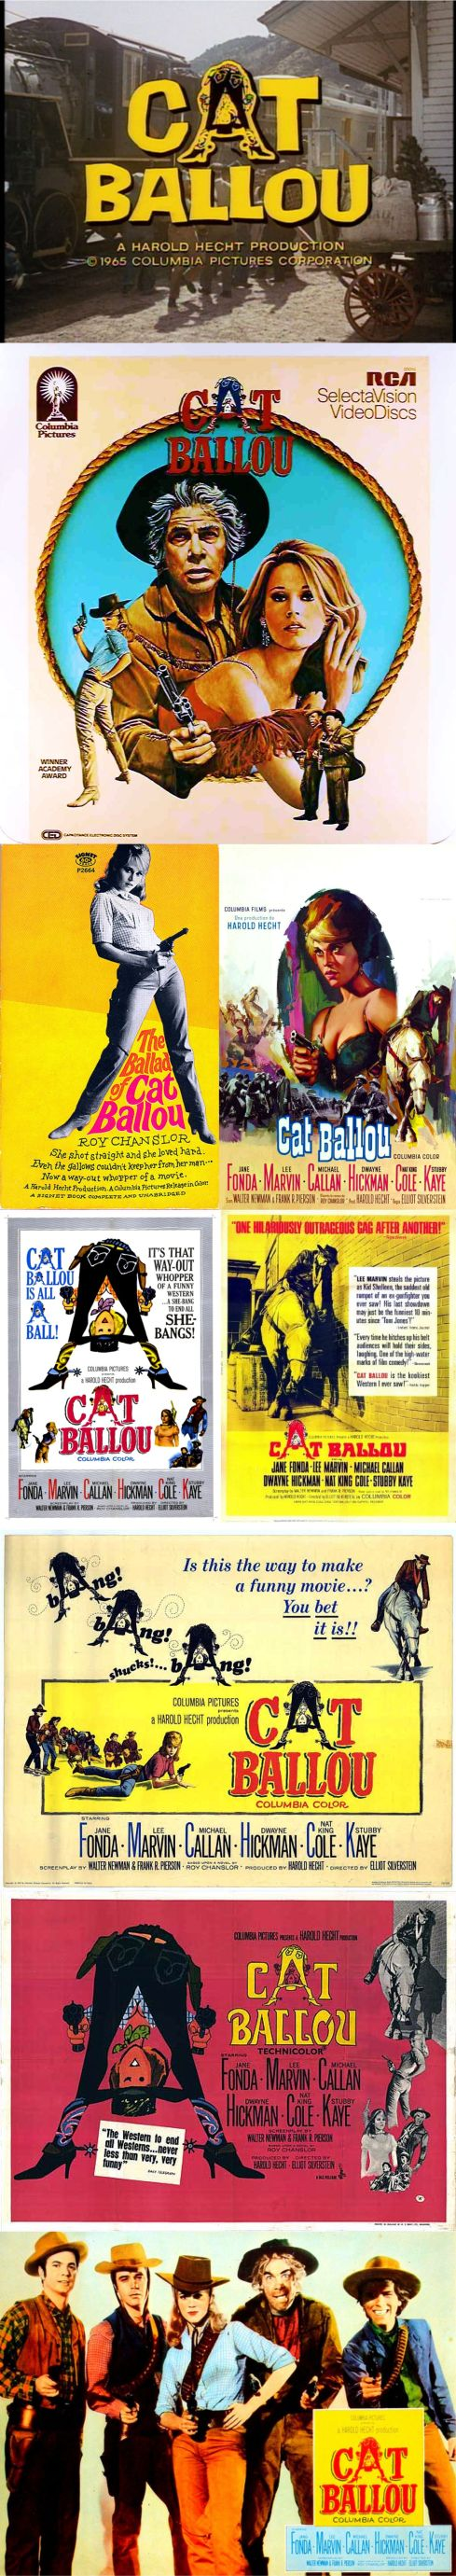 CAT BALLOU posters